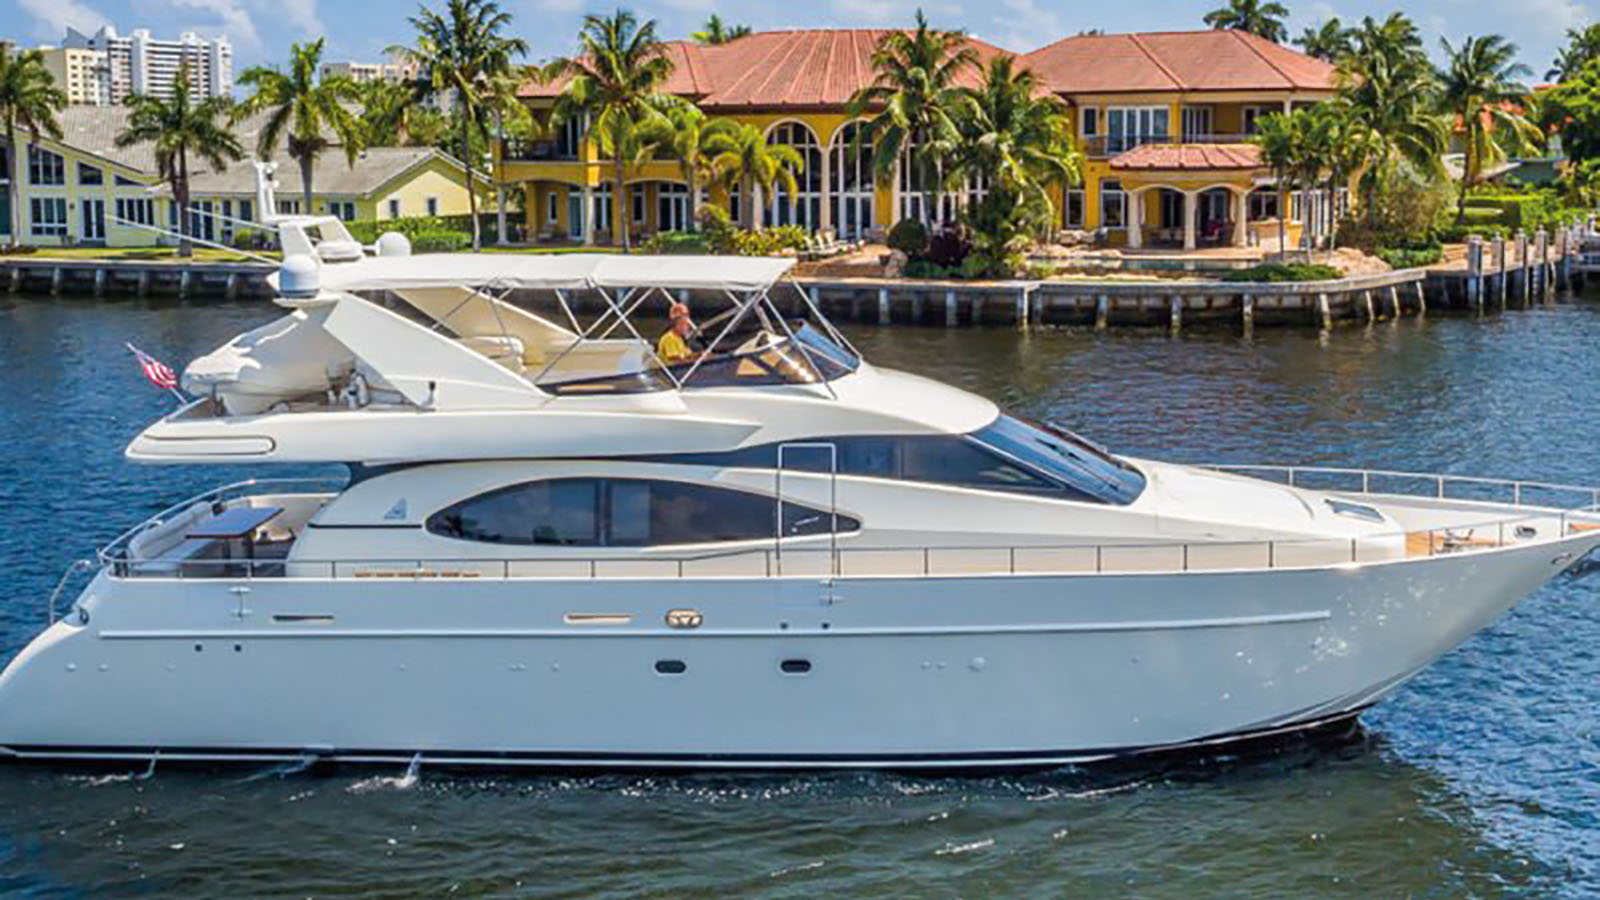 King of Hearts Yacht for Sale - IYC